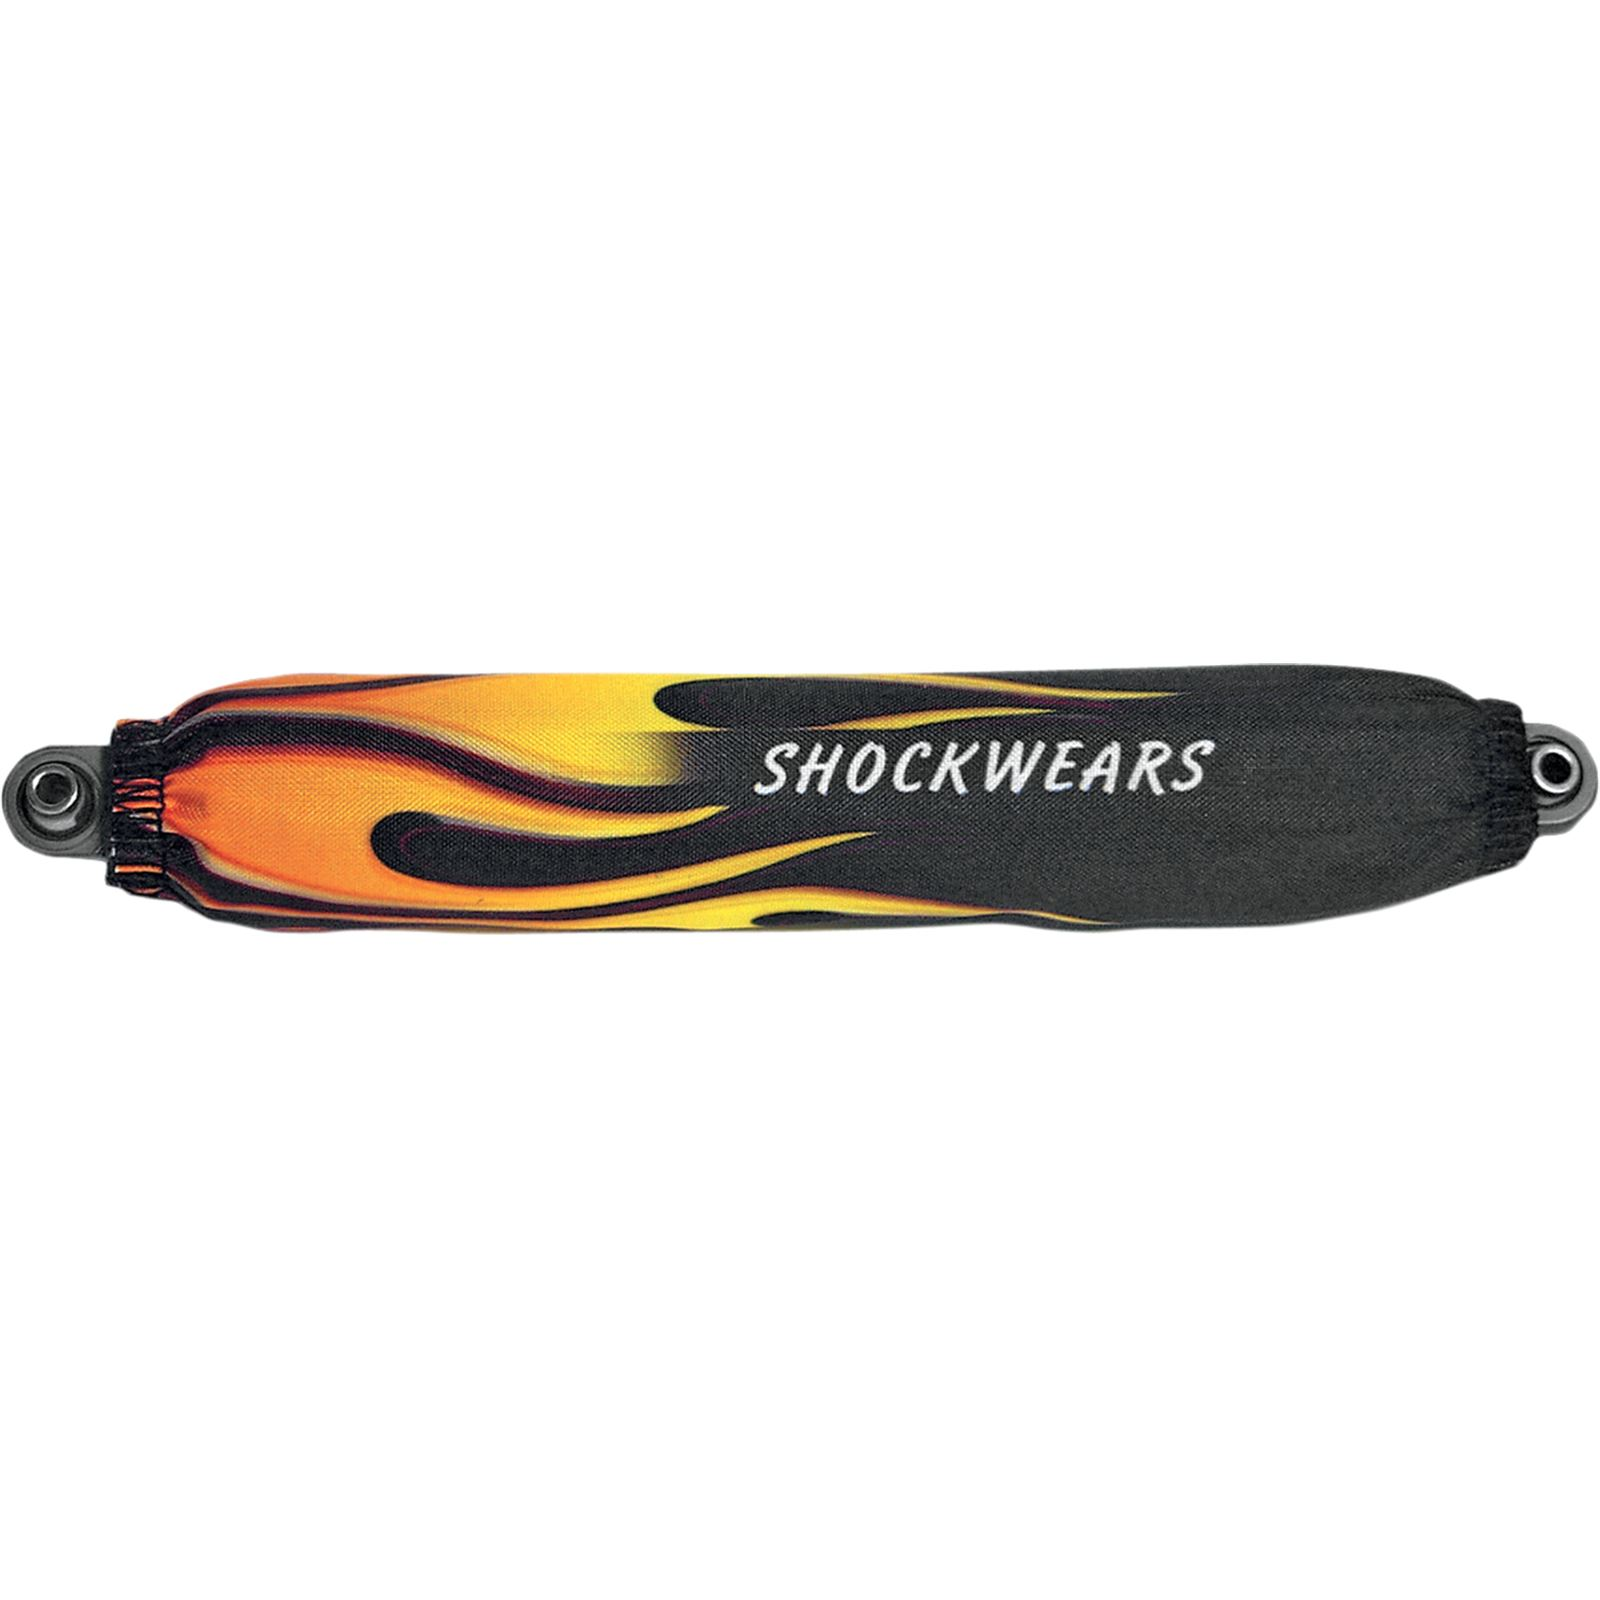 Outerwears Shock Covers Evo Flames